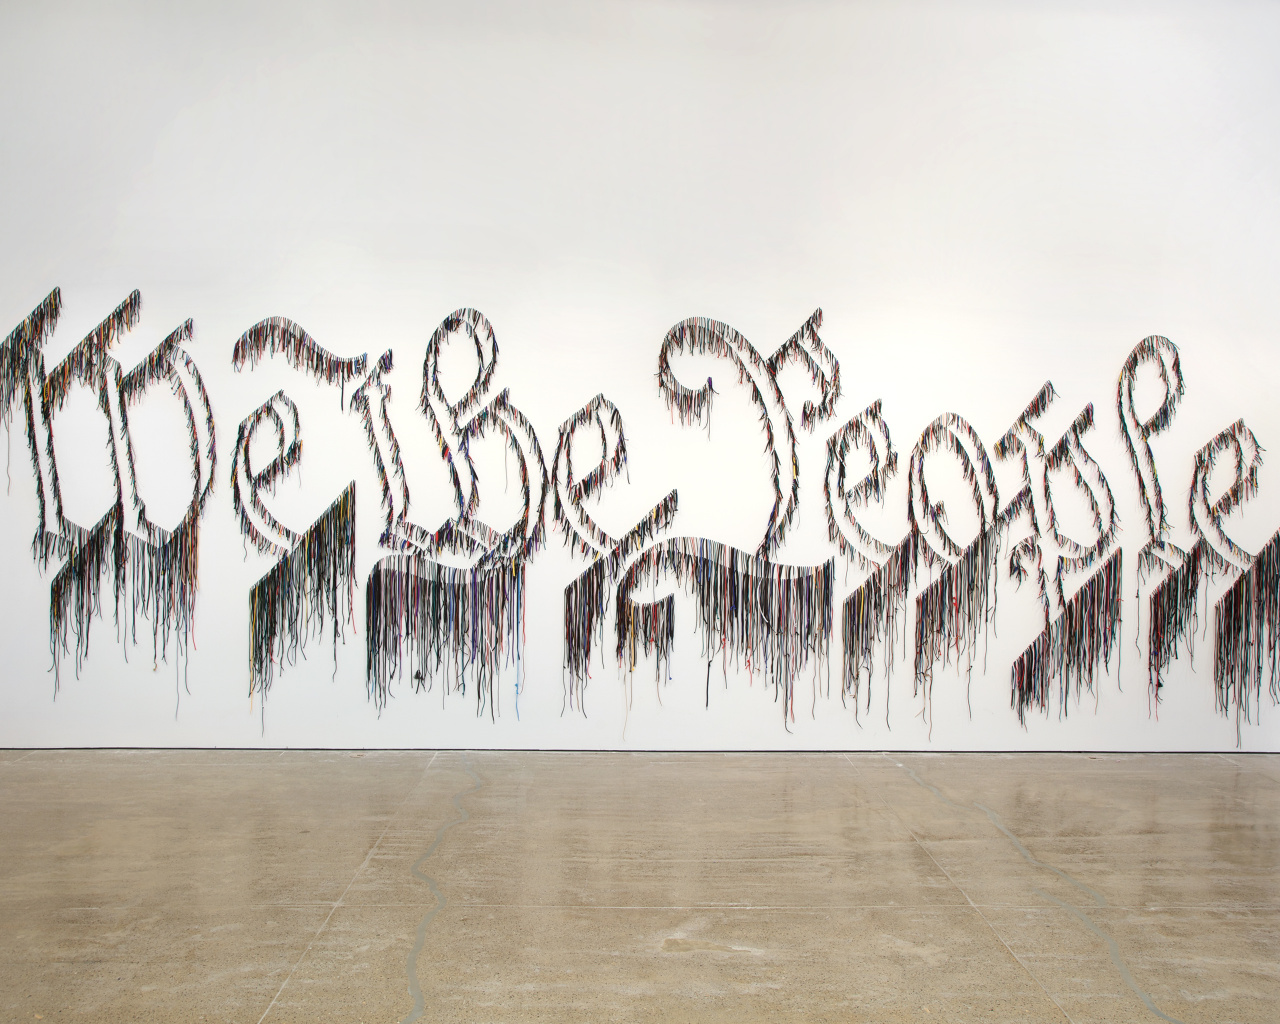 Nari Ward, We the People, 2011. Shoelaces, 96 x 324 in (243.8 × 594.4 cm). In collaboration with the Fabric Workshop and Museum, Philadelphia. Collection Speed Art Museum, Louisville, KY; Gift of the Speed Contemporary, 2016.1. © The Speed Art Museum, Louisville, KY